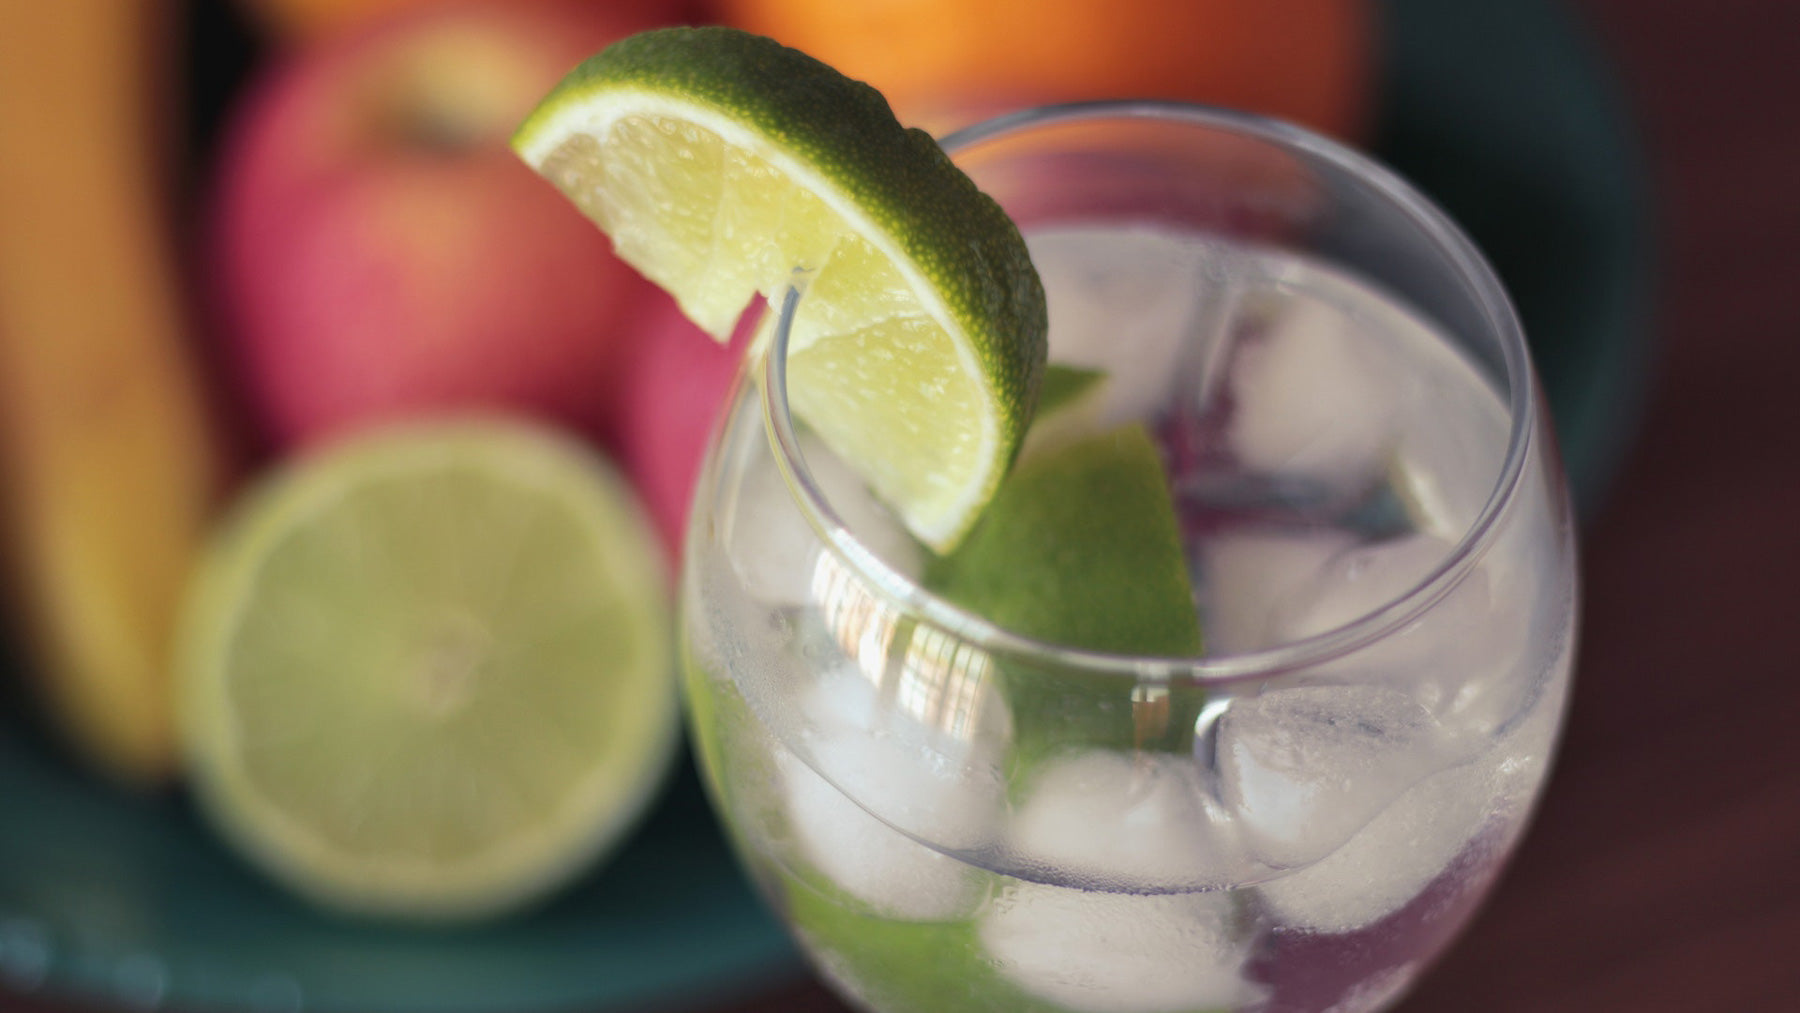 aerial view of glass of water with ice and slice of lime and fruit on table in background